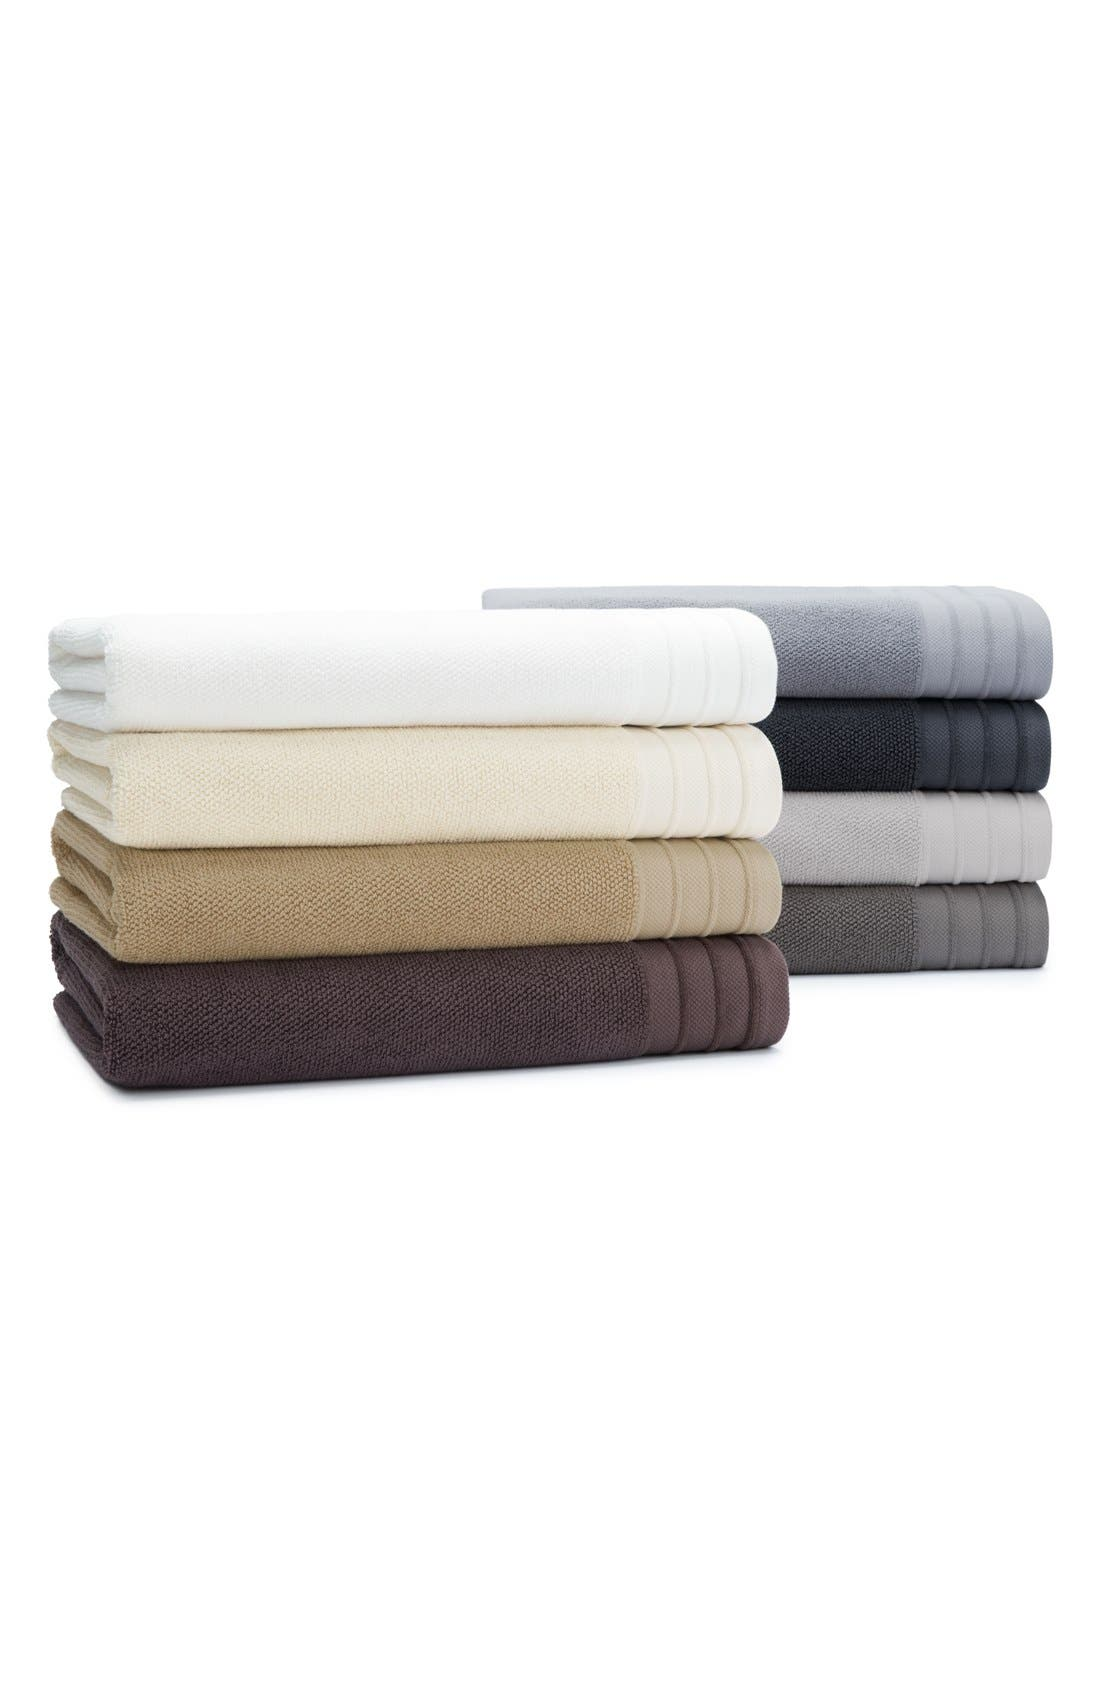 Alternate Image 3  - UGG® Classic Luxe Wash Towel